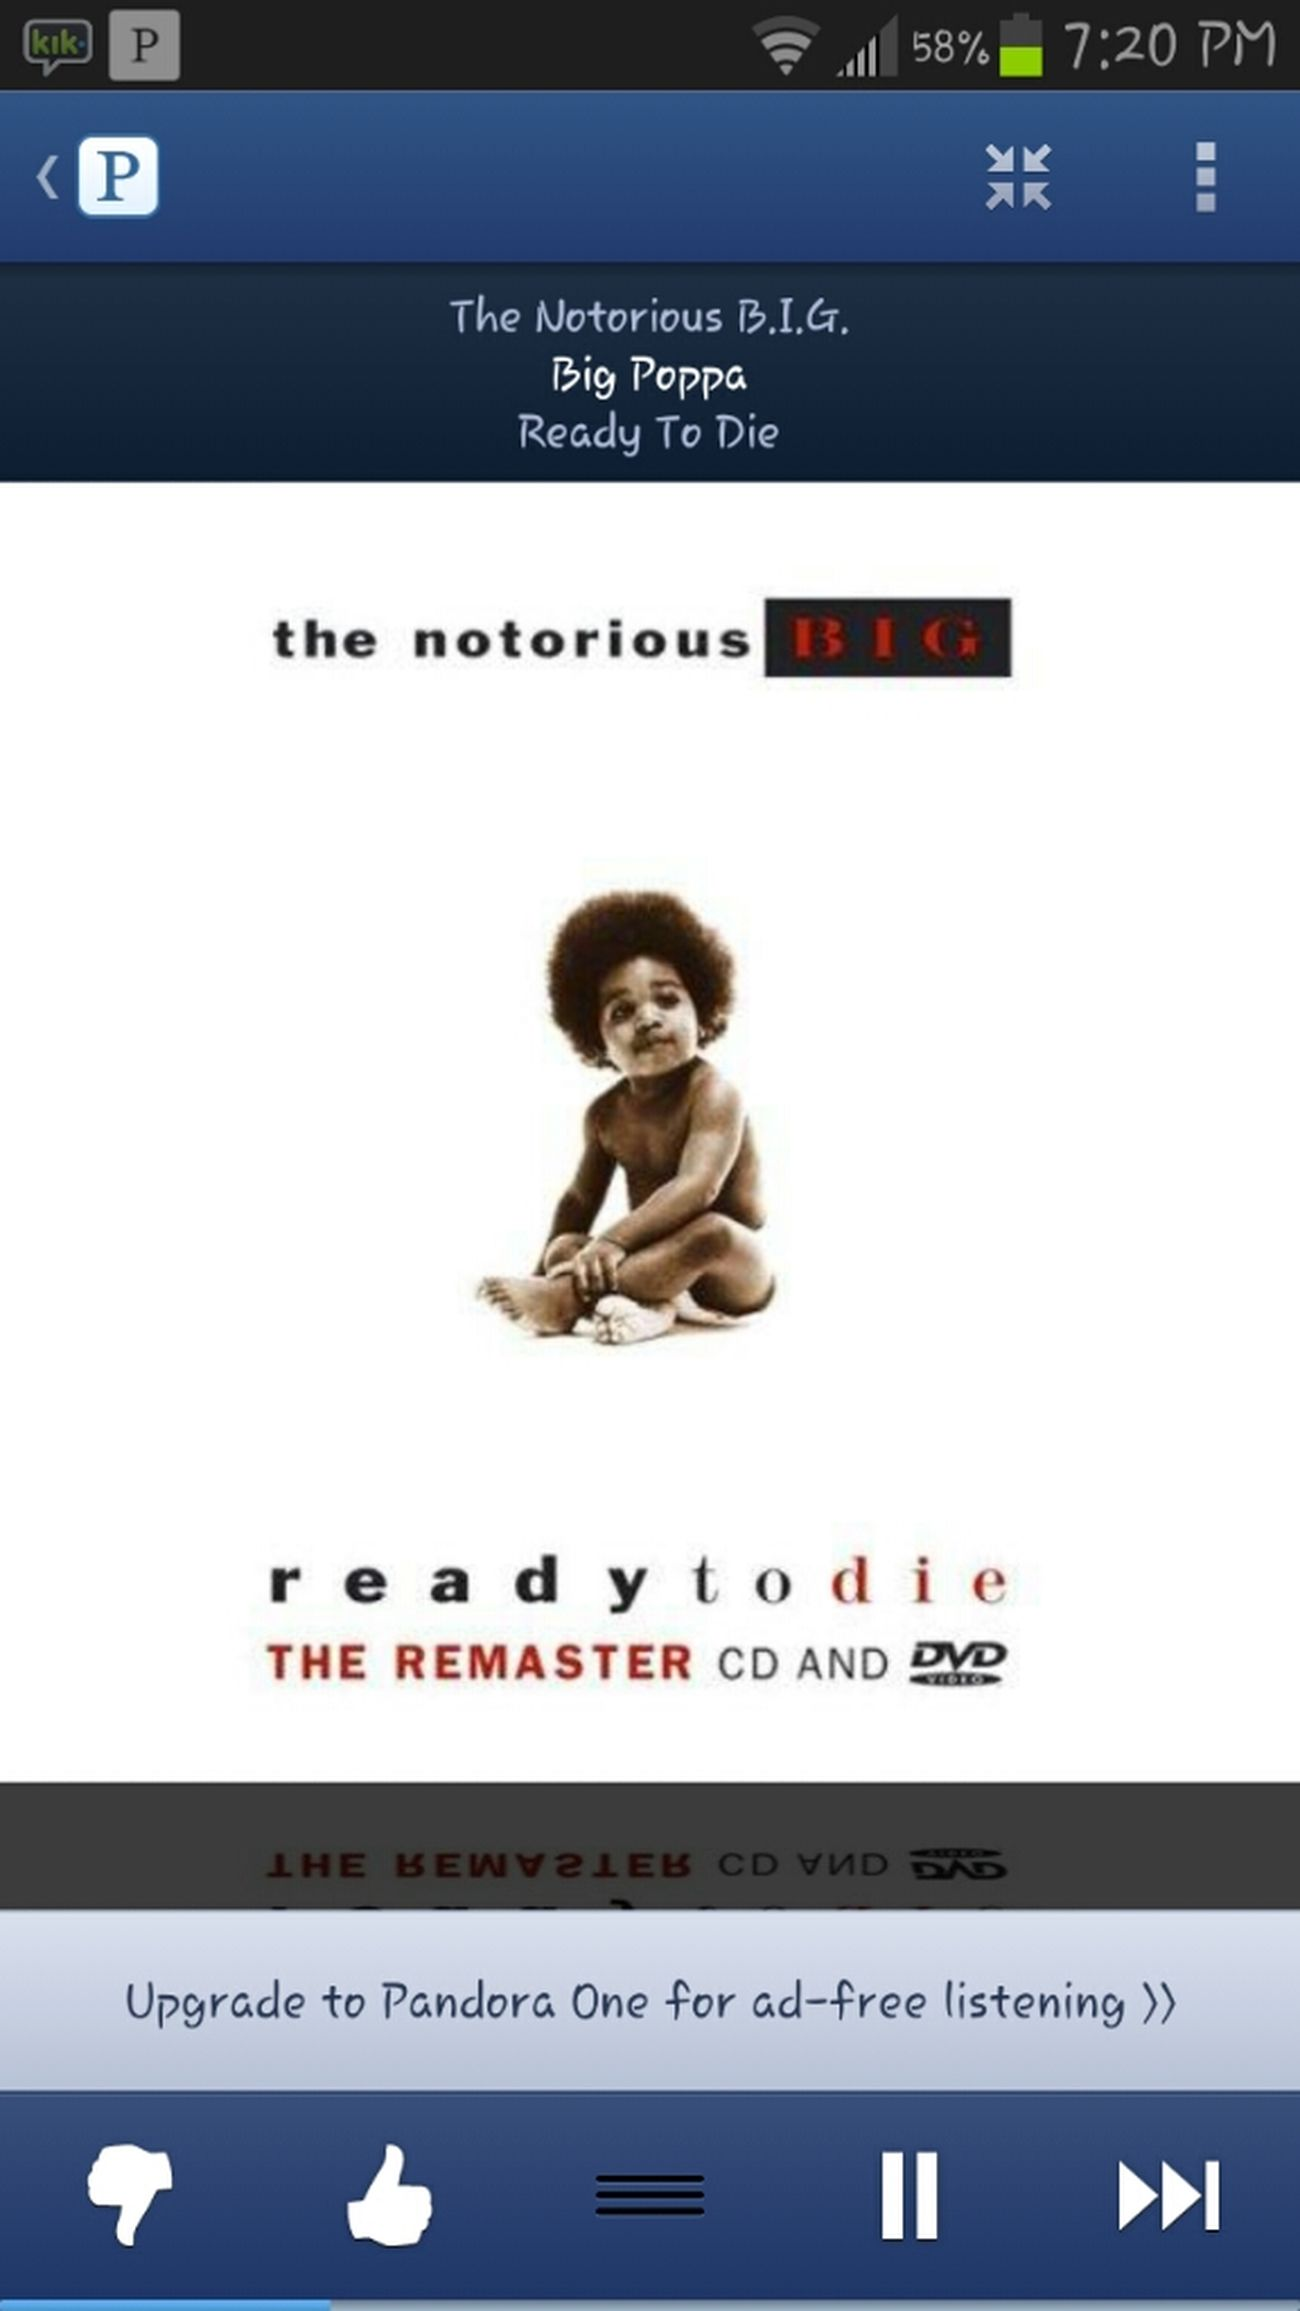 pandora AINT PLAYING TODAY !! BIGGIE ♡ - Call me big poppa ♥